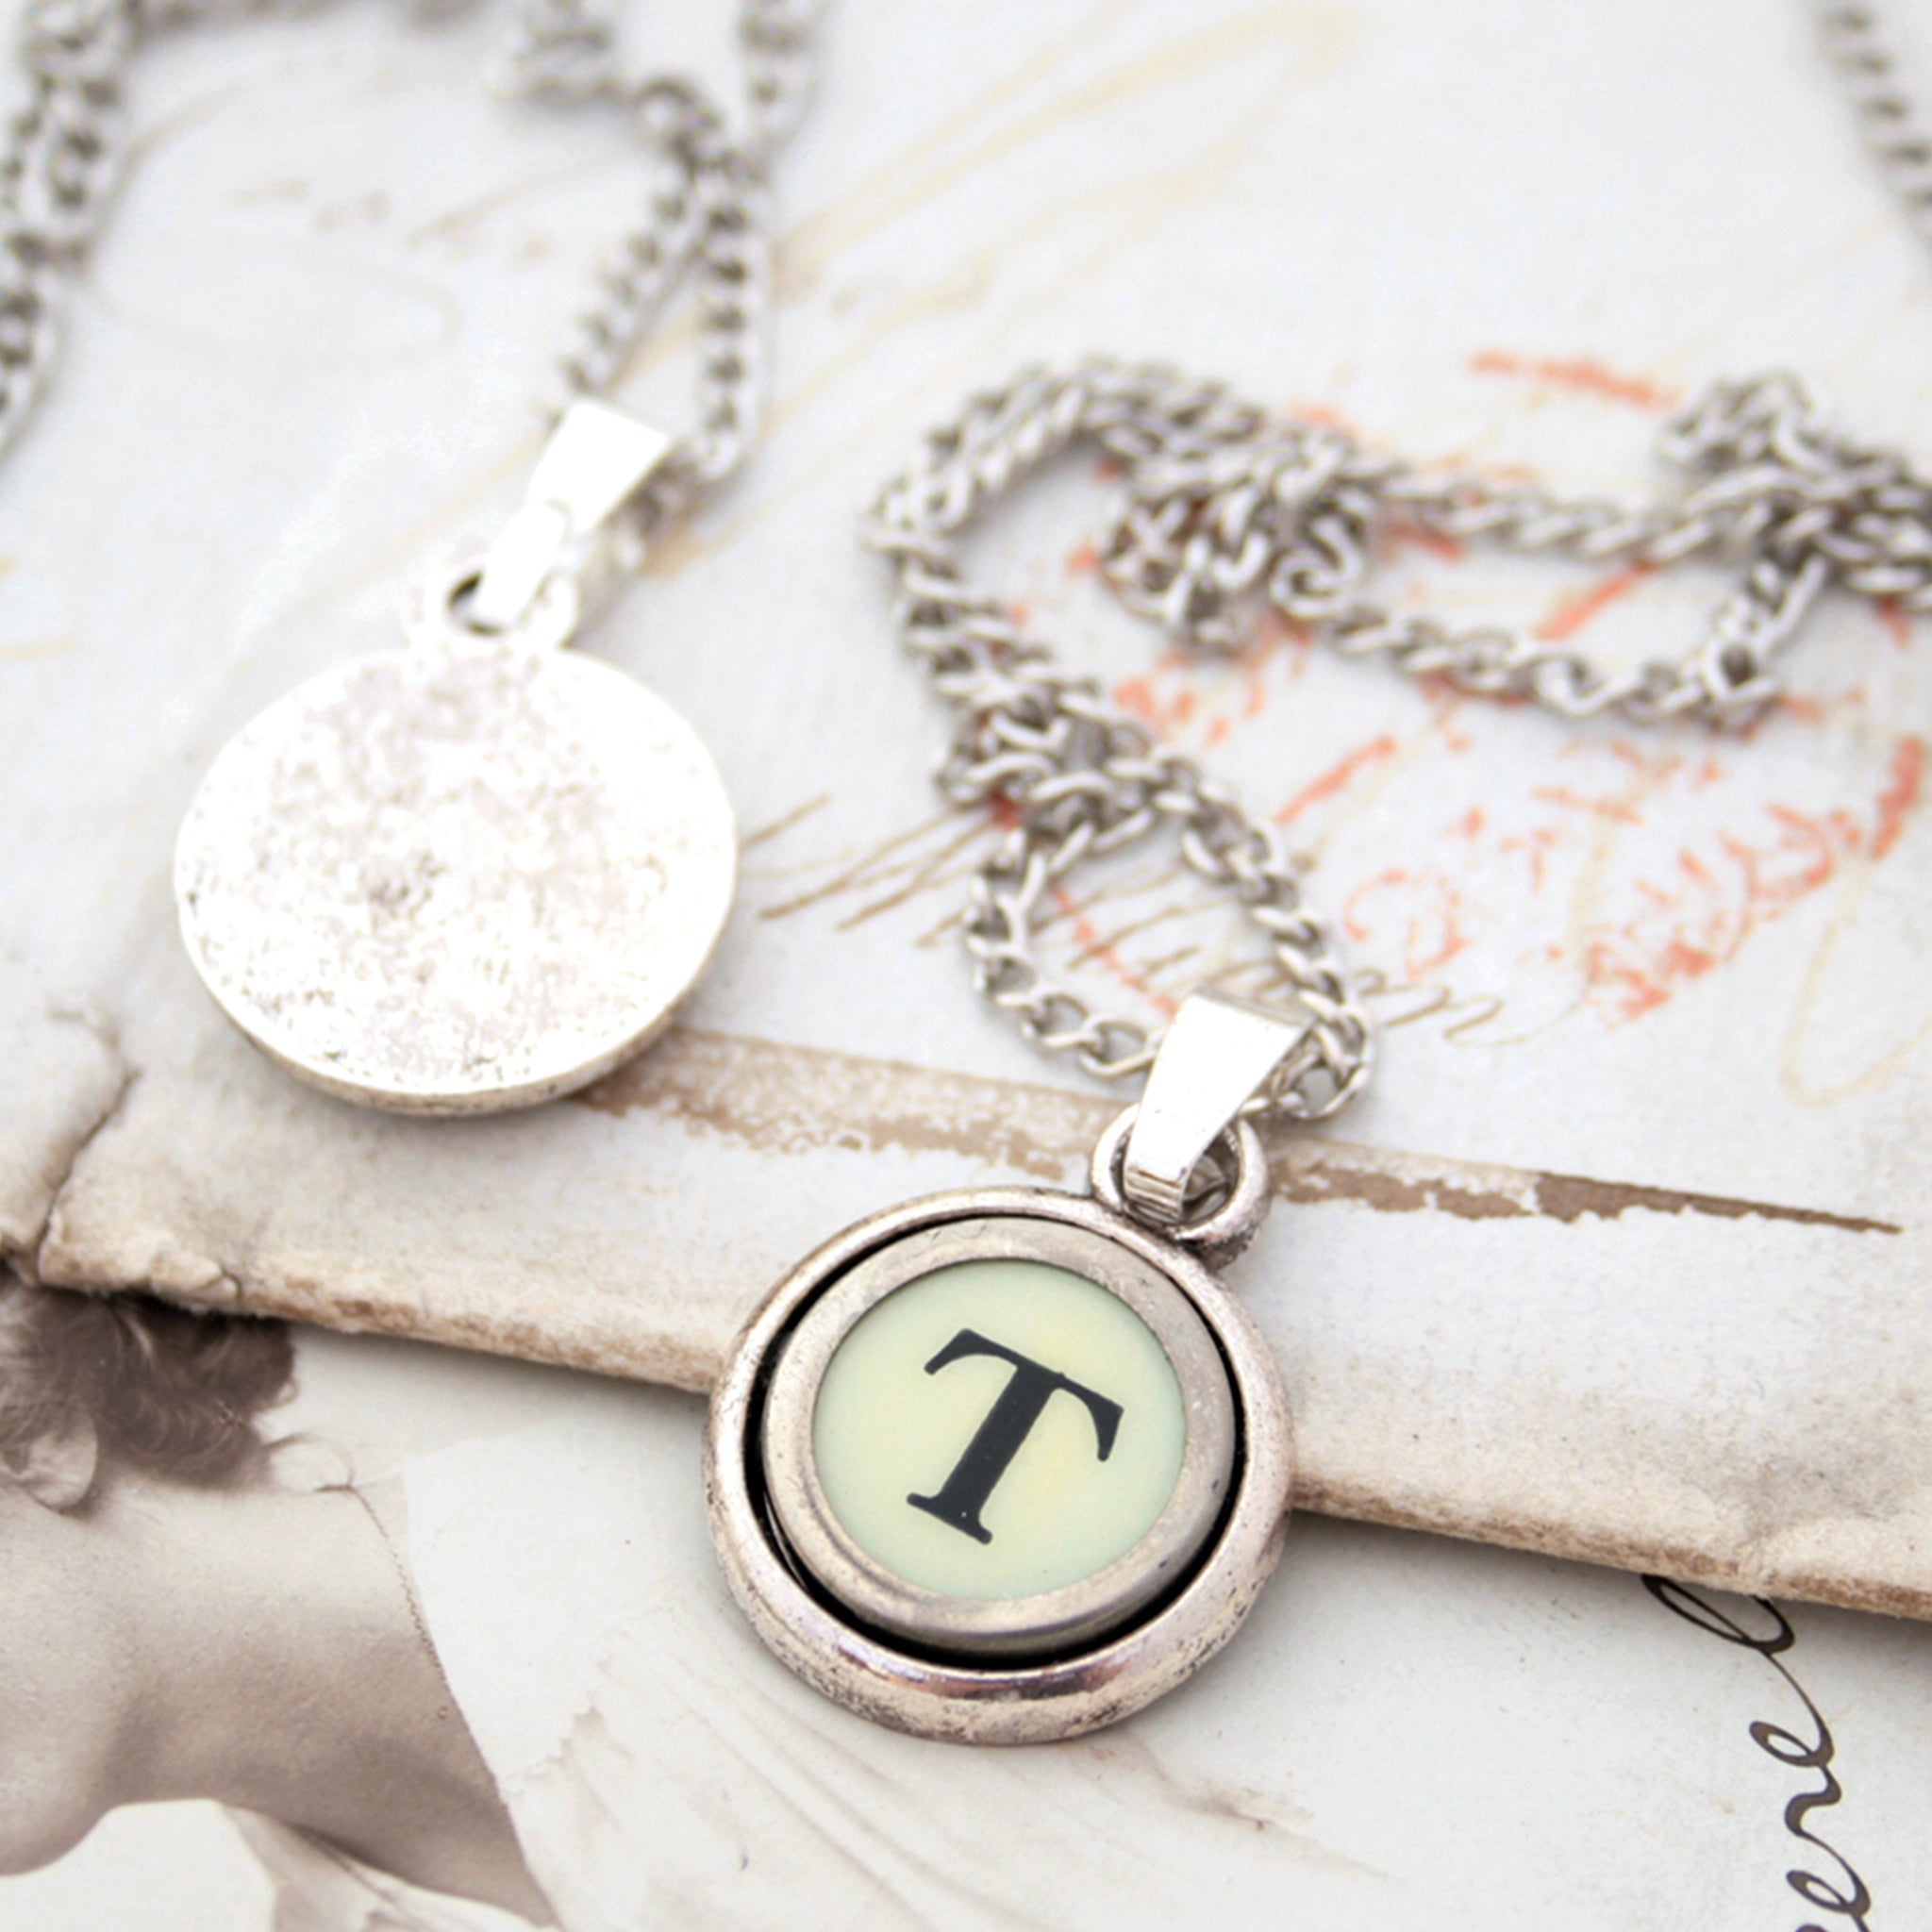 Ivory T letter necklace made of typewriter key